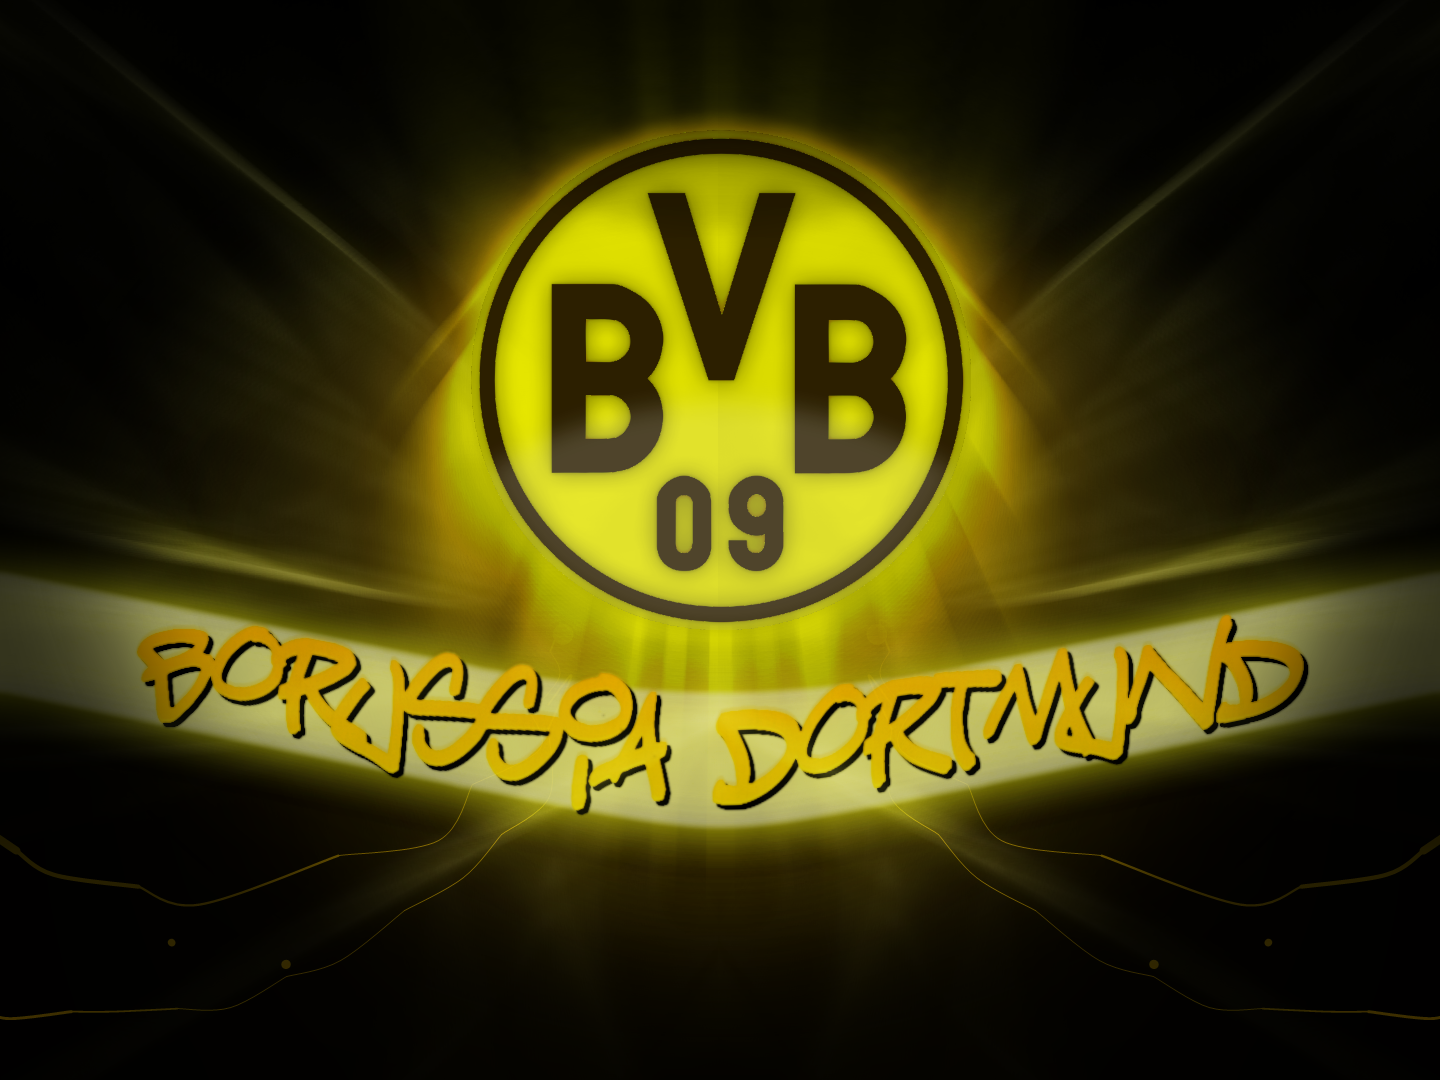 wallpaper free picture borussia dortmund wallpaper 2011